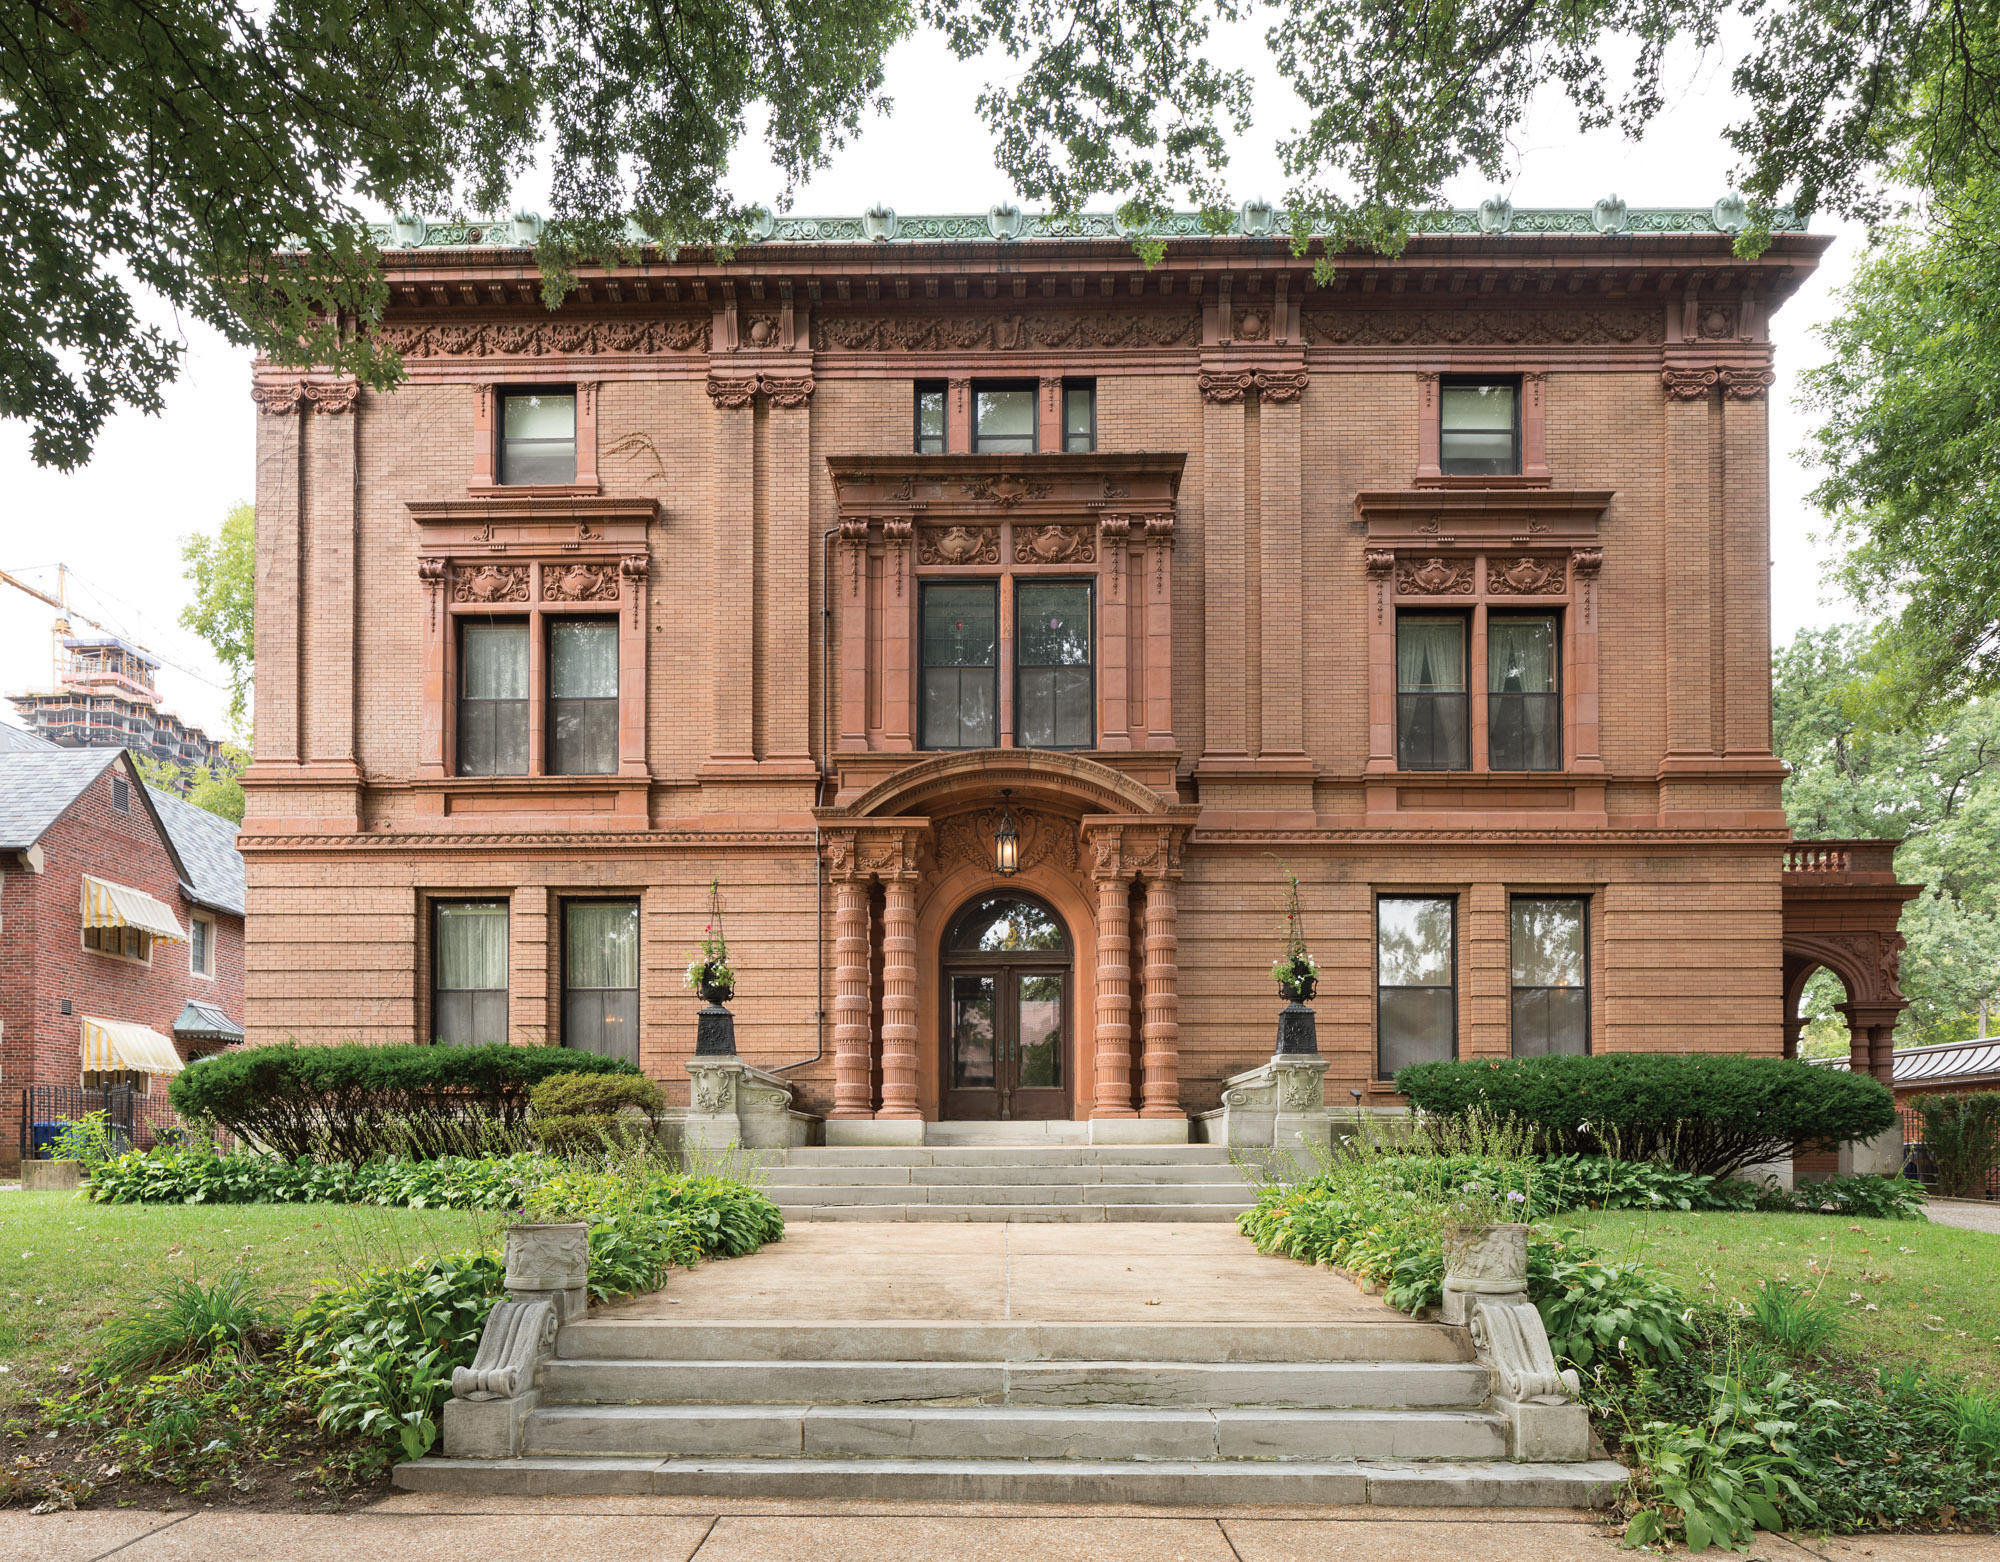 The imposing Beaux Arts mansion sits in leafy Westminster Place, a private neighborhood of late-19th-century homes. The Inaugural Breakfast of the 1904 World's Fair was held here.